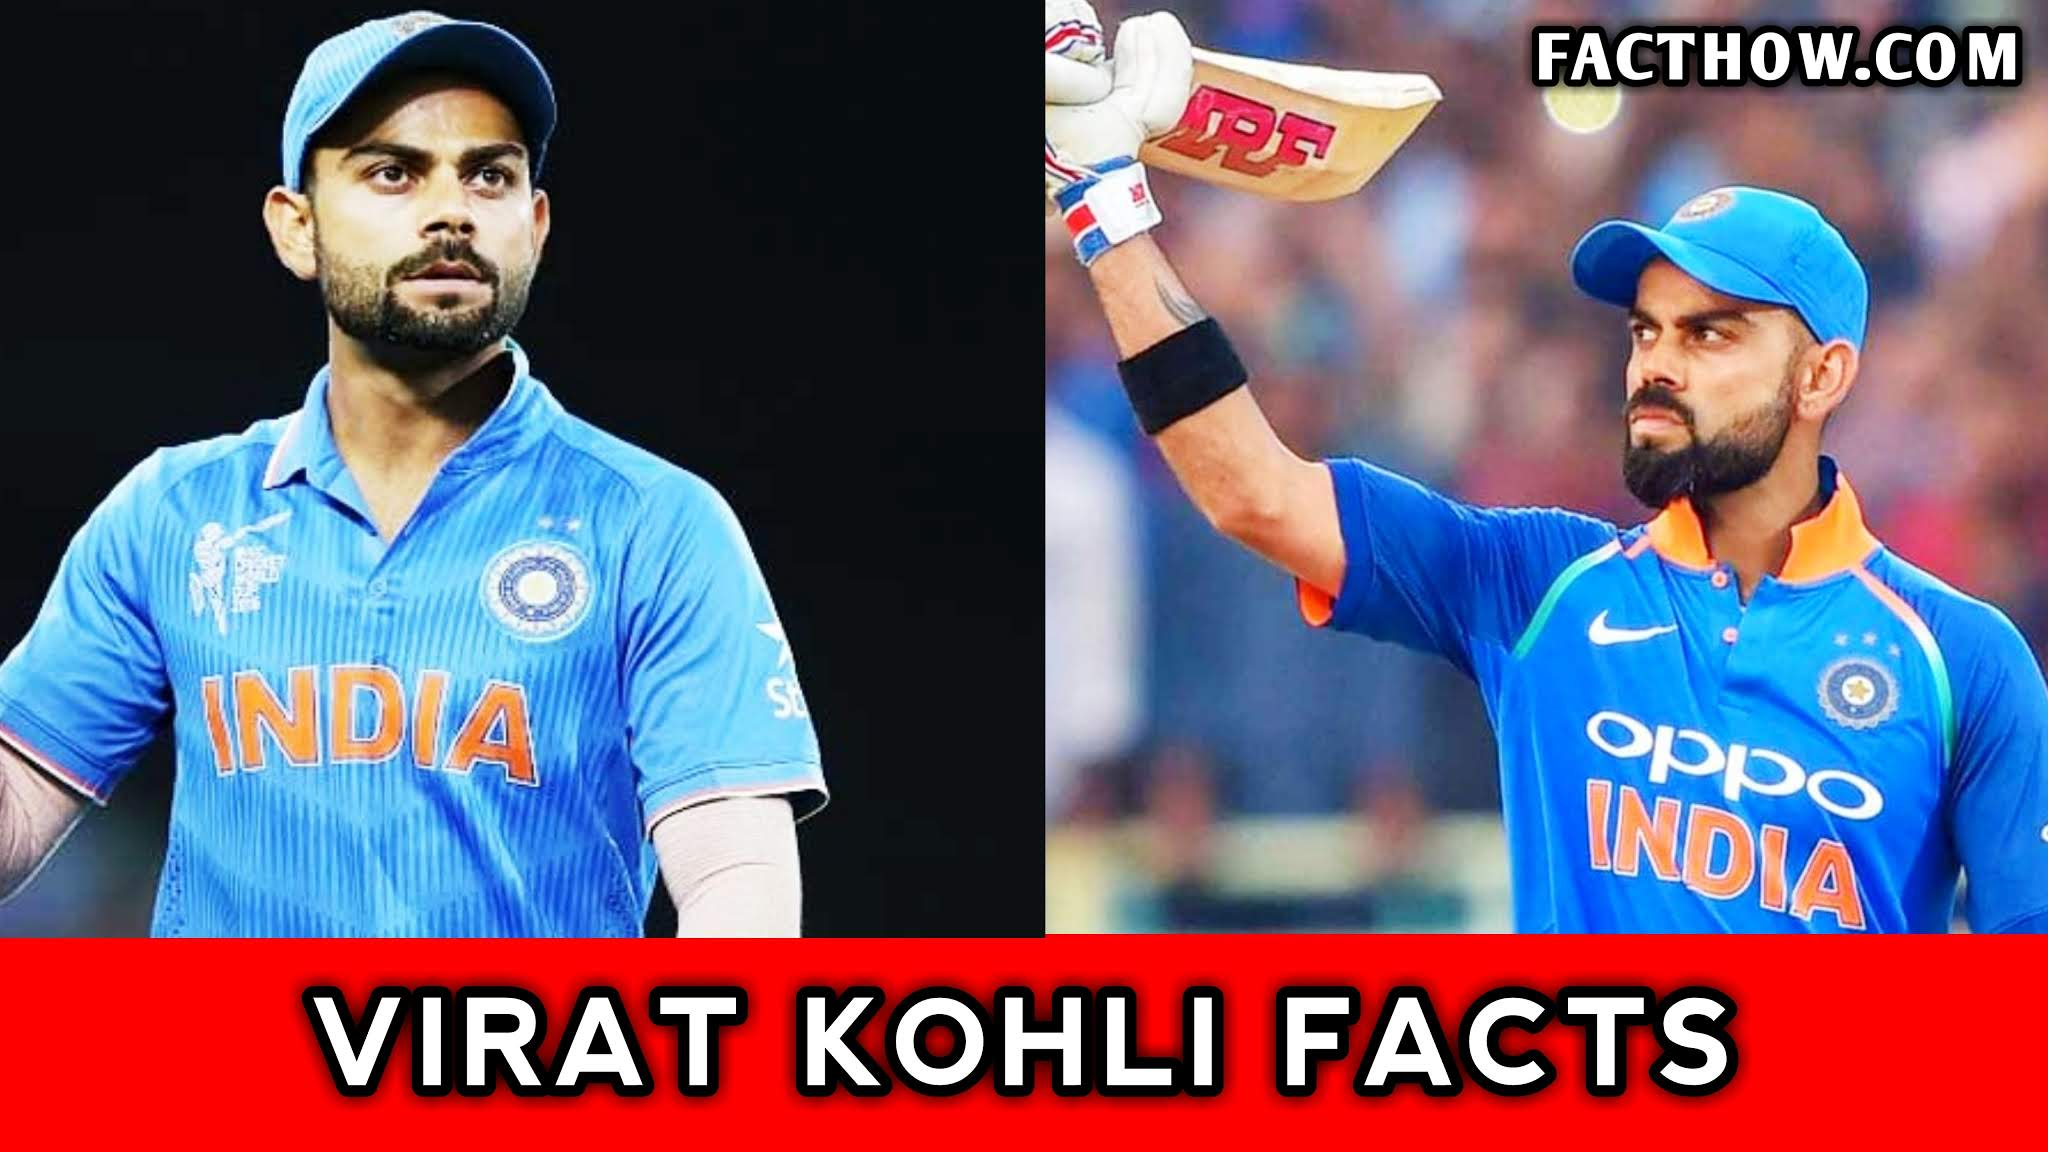 virat-kohli-interesting-facts-hindi-virat-kohli-se-jude-rochak-tathya-virat-kohli-birthday-kohli-wedding-anushka-sharma-fact-how-facthow-hindi-indian-cricketer-facts